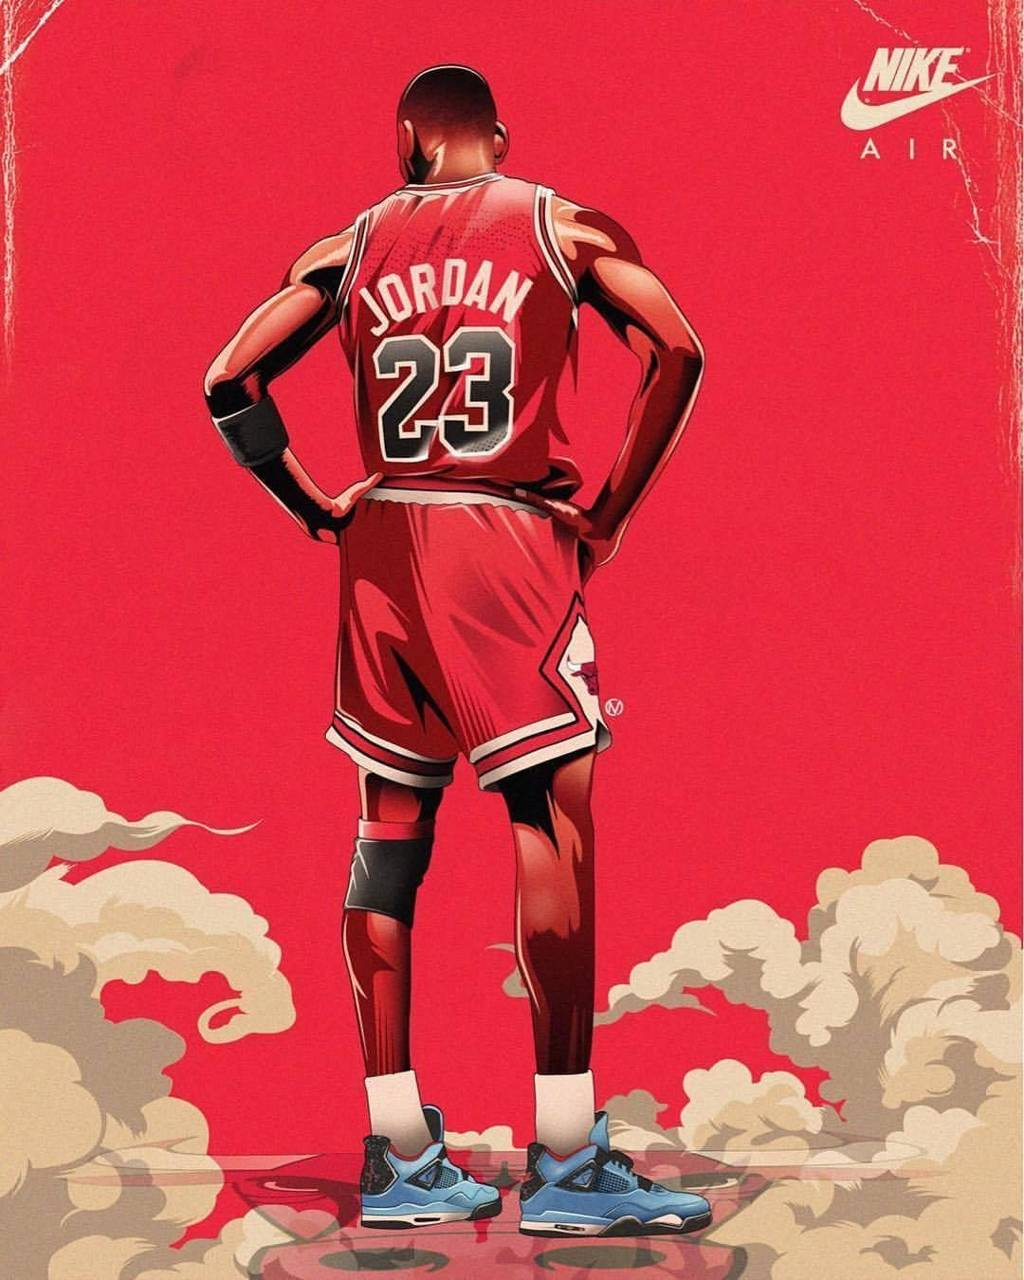 Jordan 23 Wallpaper By Bigpapi89 2b Free On Zedge